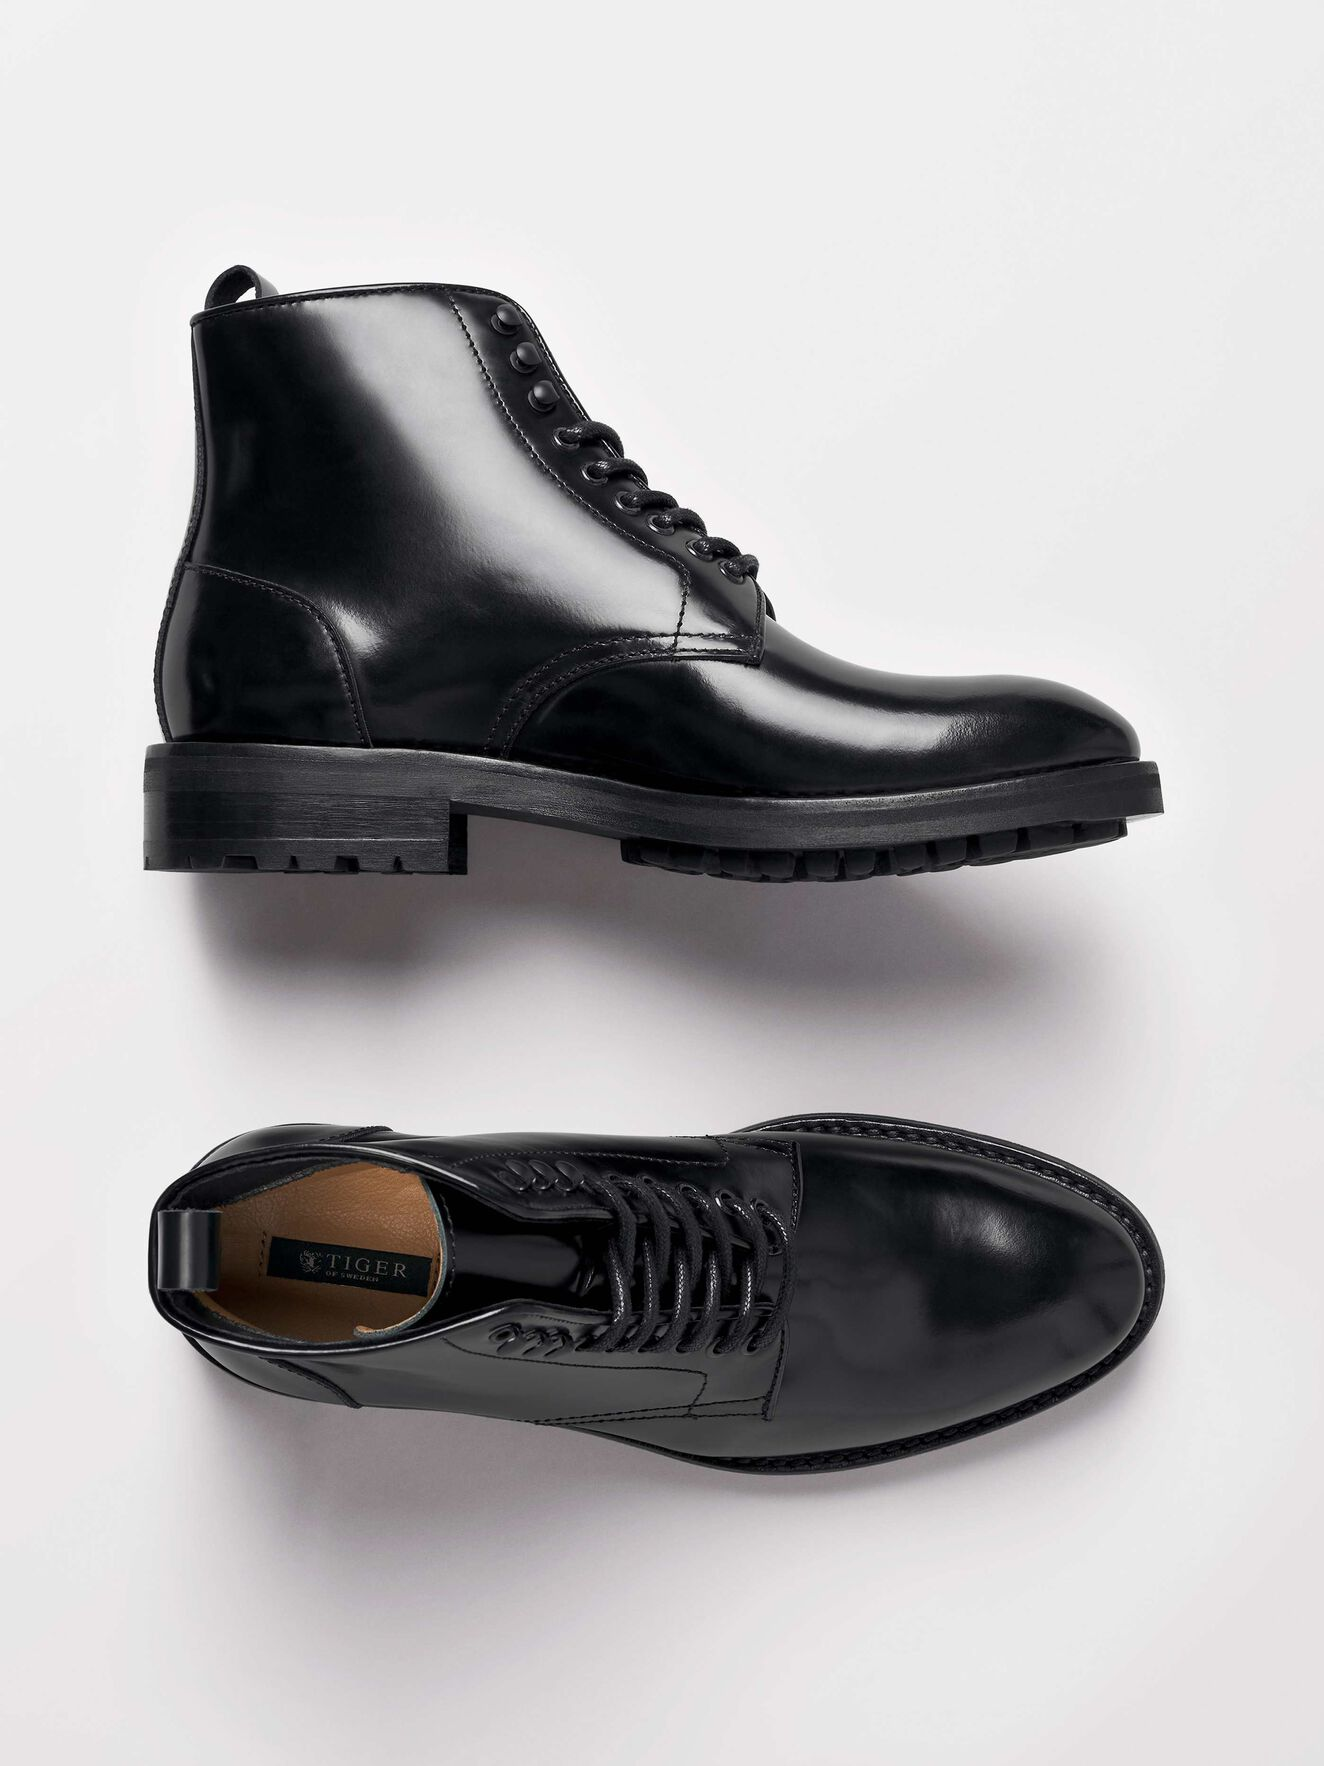 Bidcot Boots in Black from Tiger of Sweden